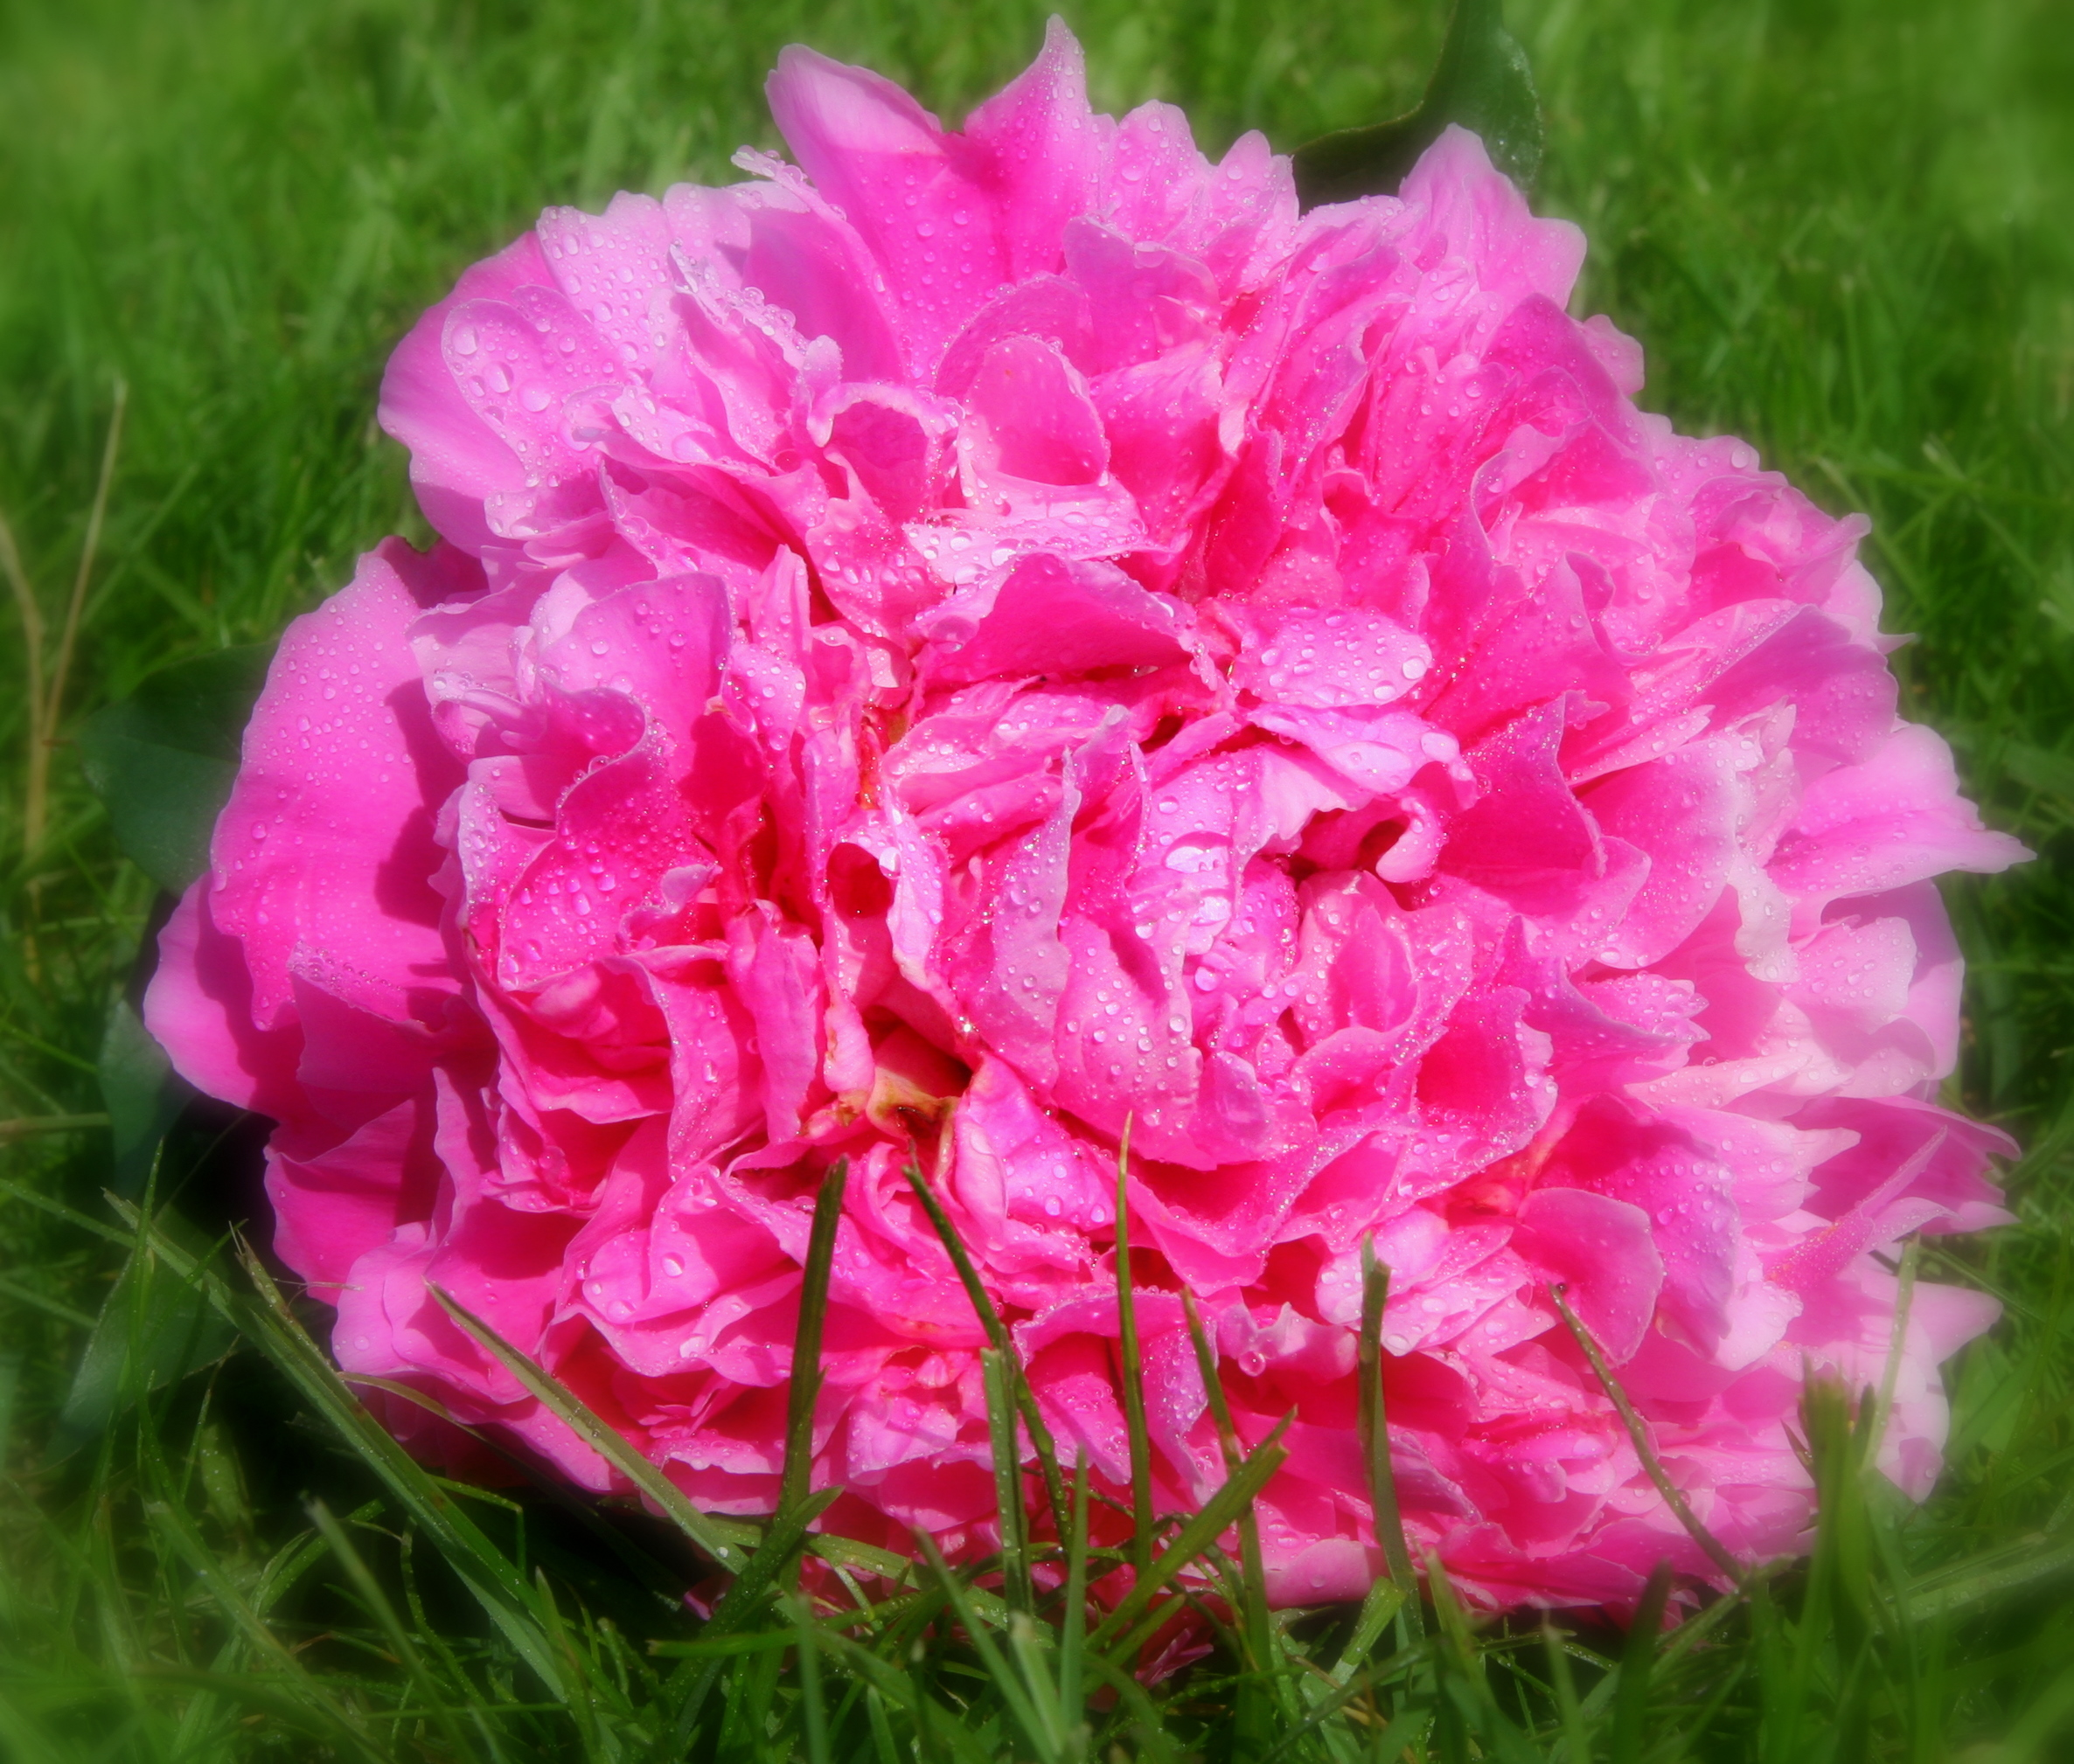 Felix Crousse - Felix Crousse is the largest of the hot pink / fuchsia peonies.  It is full double with well scalloped petals that ruffle in a light breeze.  Felix has a pleasant fragrance that delicately fills the room.